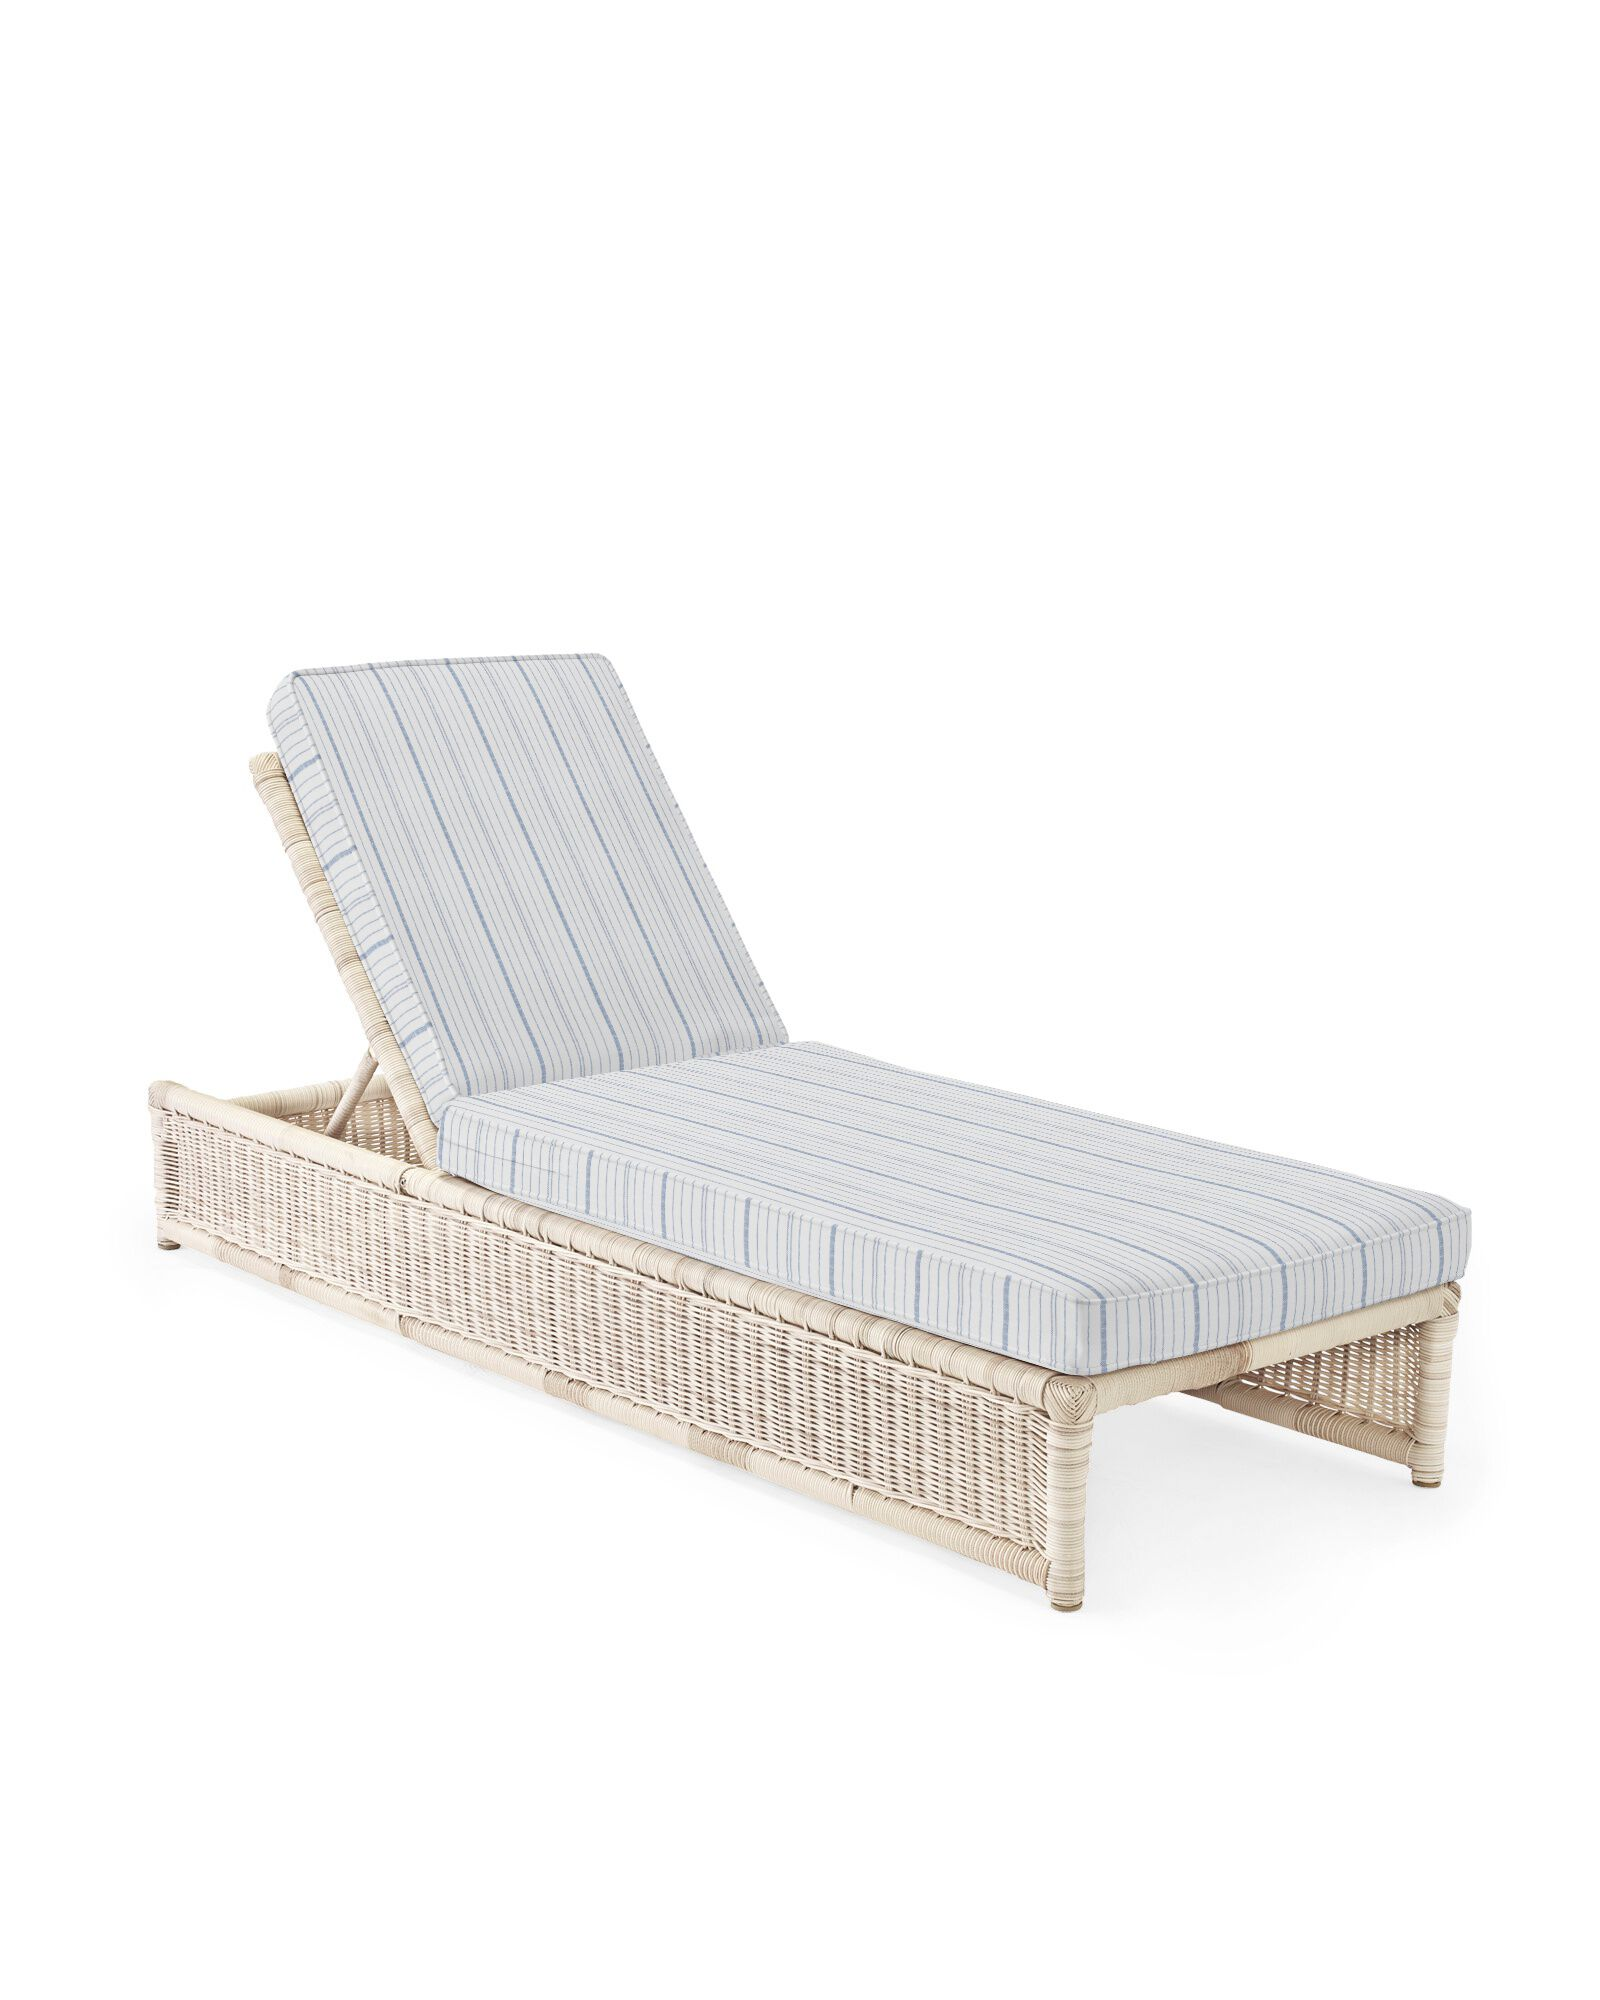 Cushion Cover for Pacifica Chaise, Surf Stripe Navy